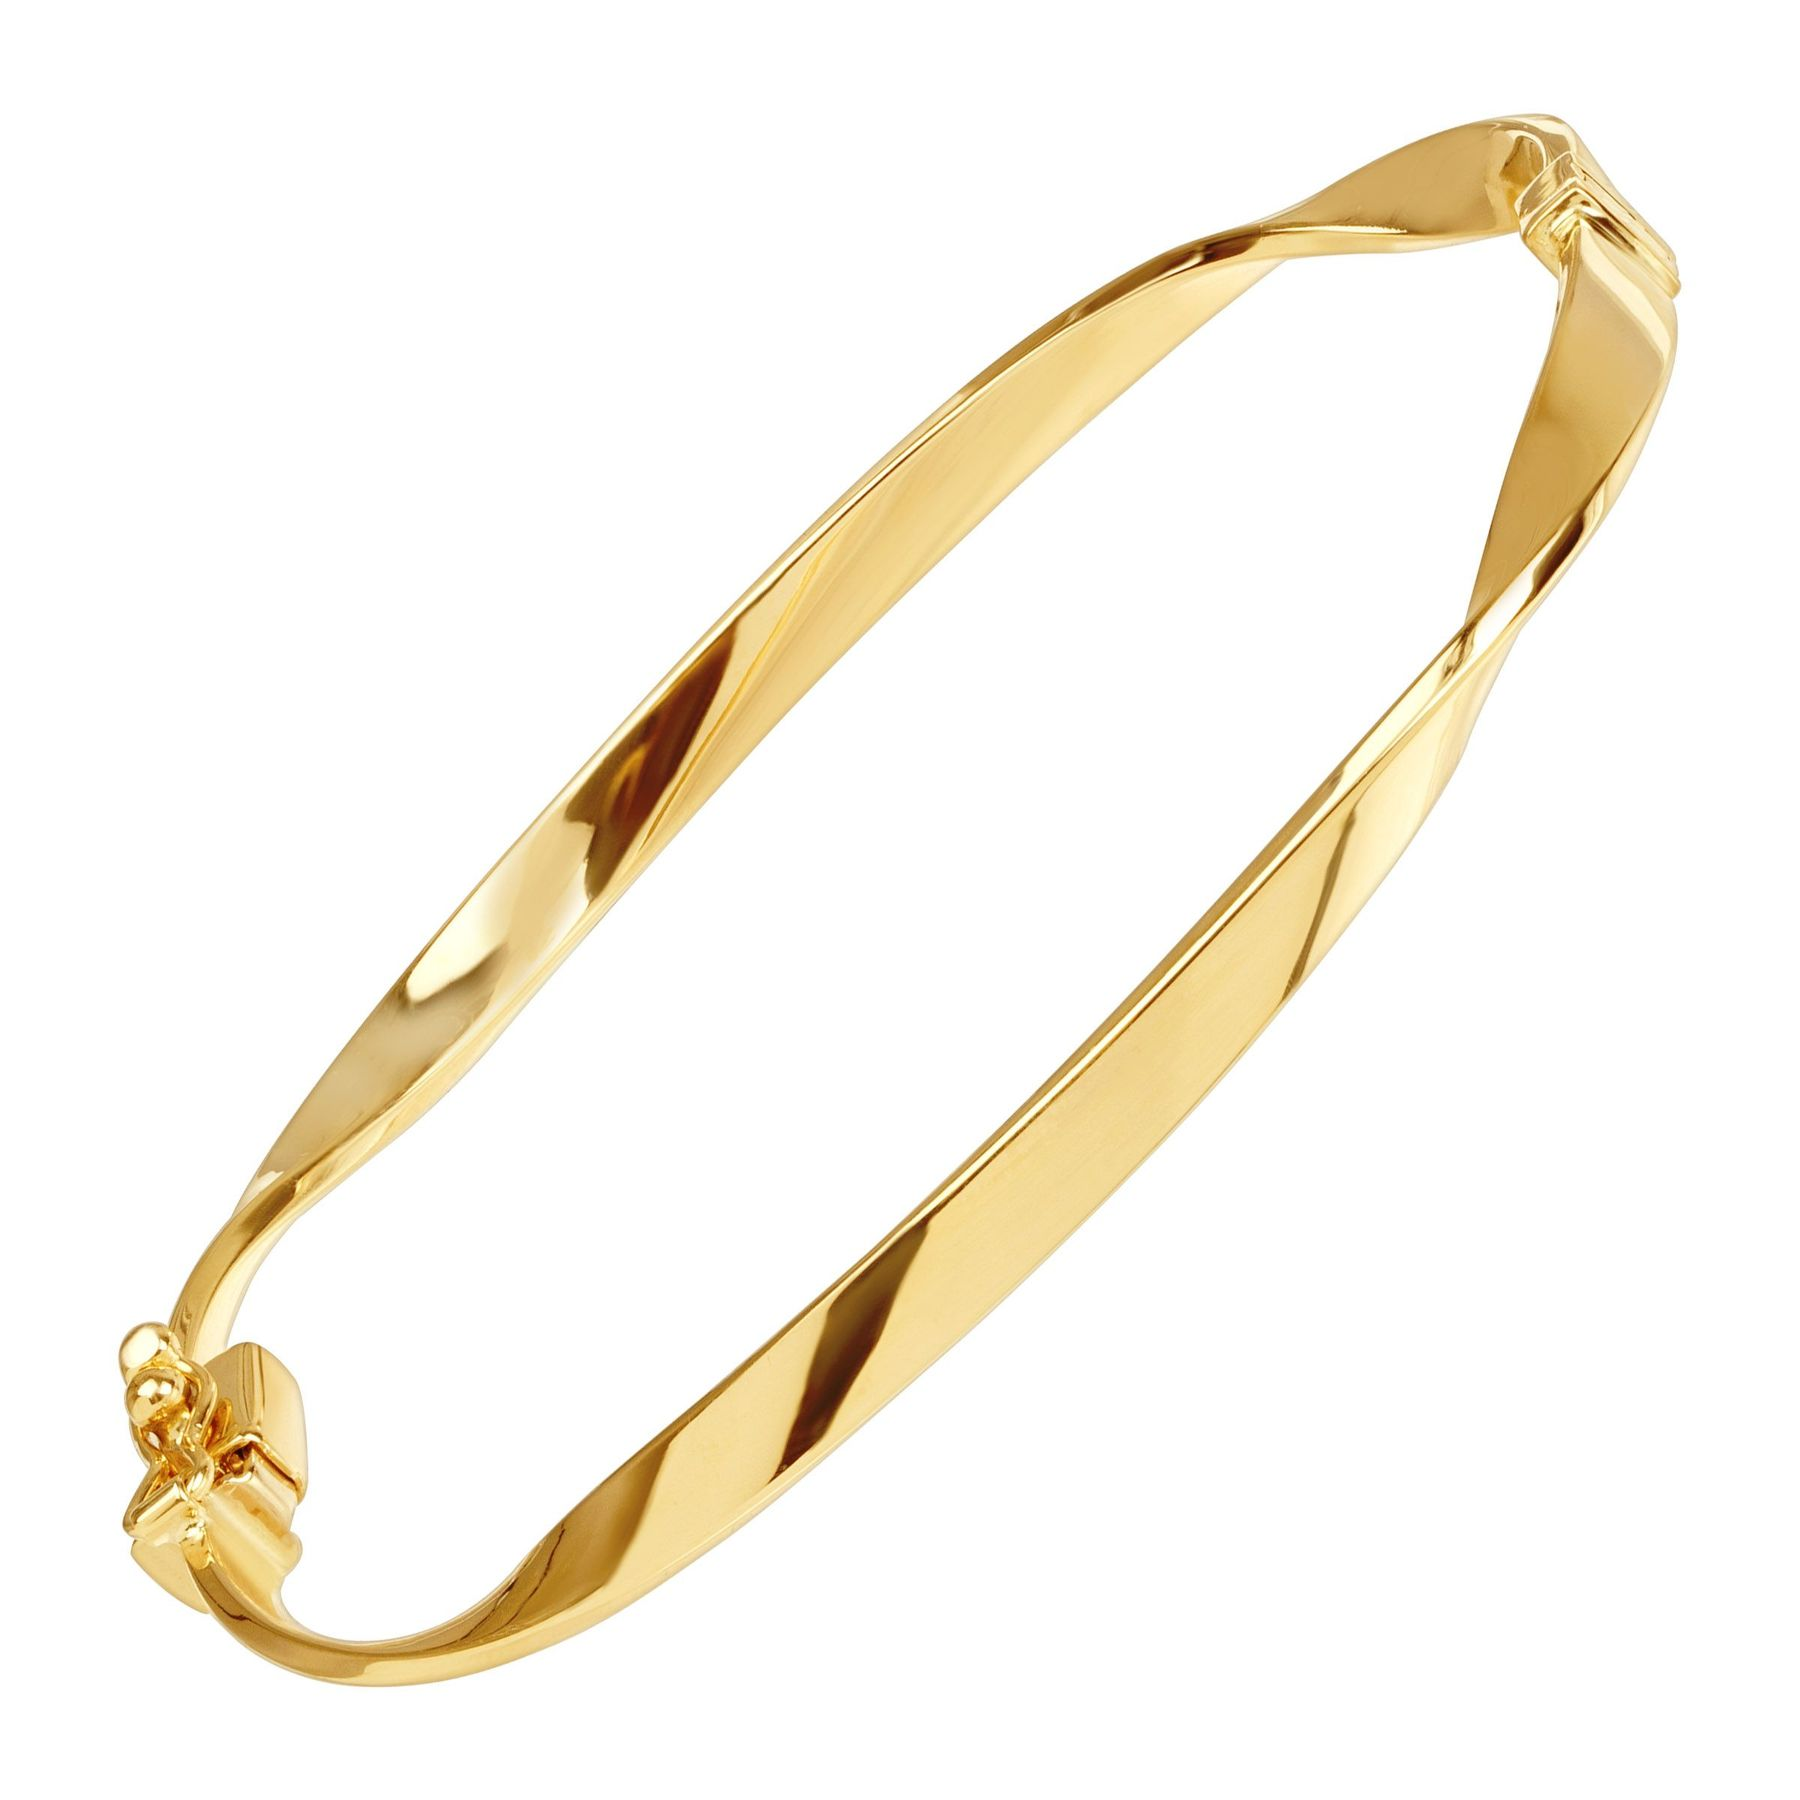 zi dillards twisted bracelet gold kate p pav new bangle york hinged bangles crystal spade